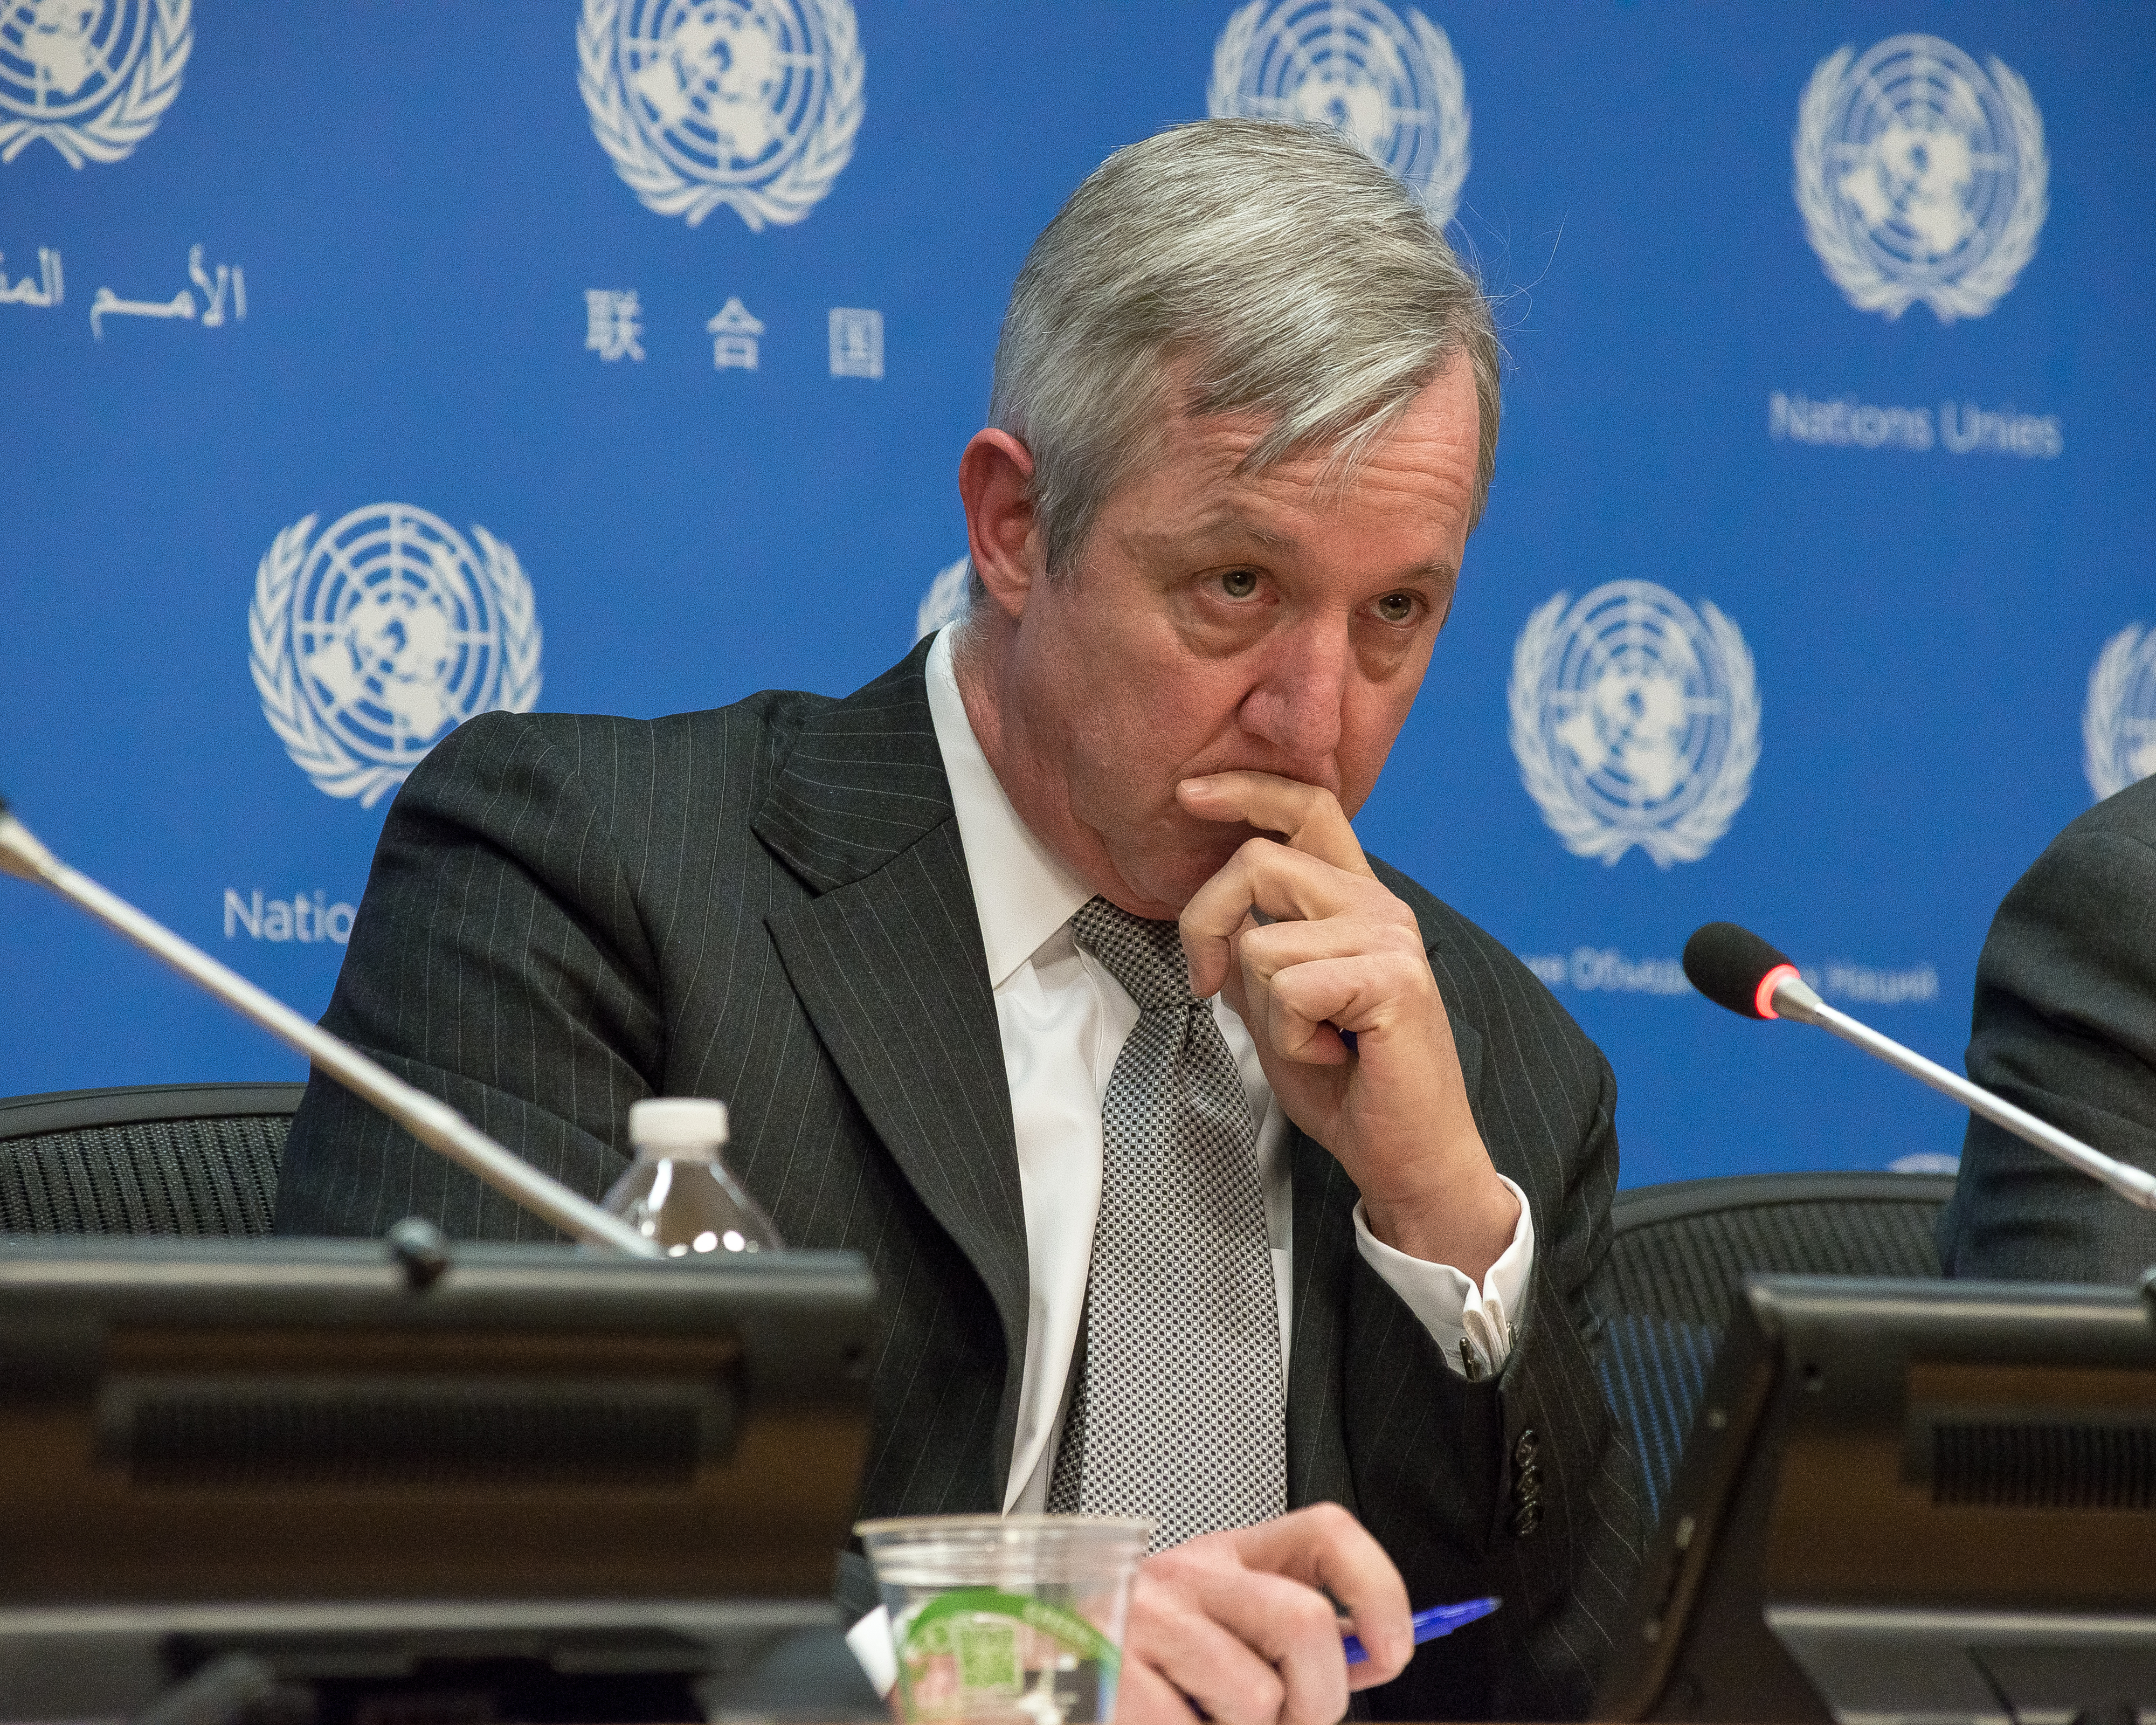 Anthony Banbury speaks with the UN press corps, The United